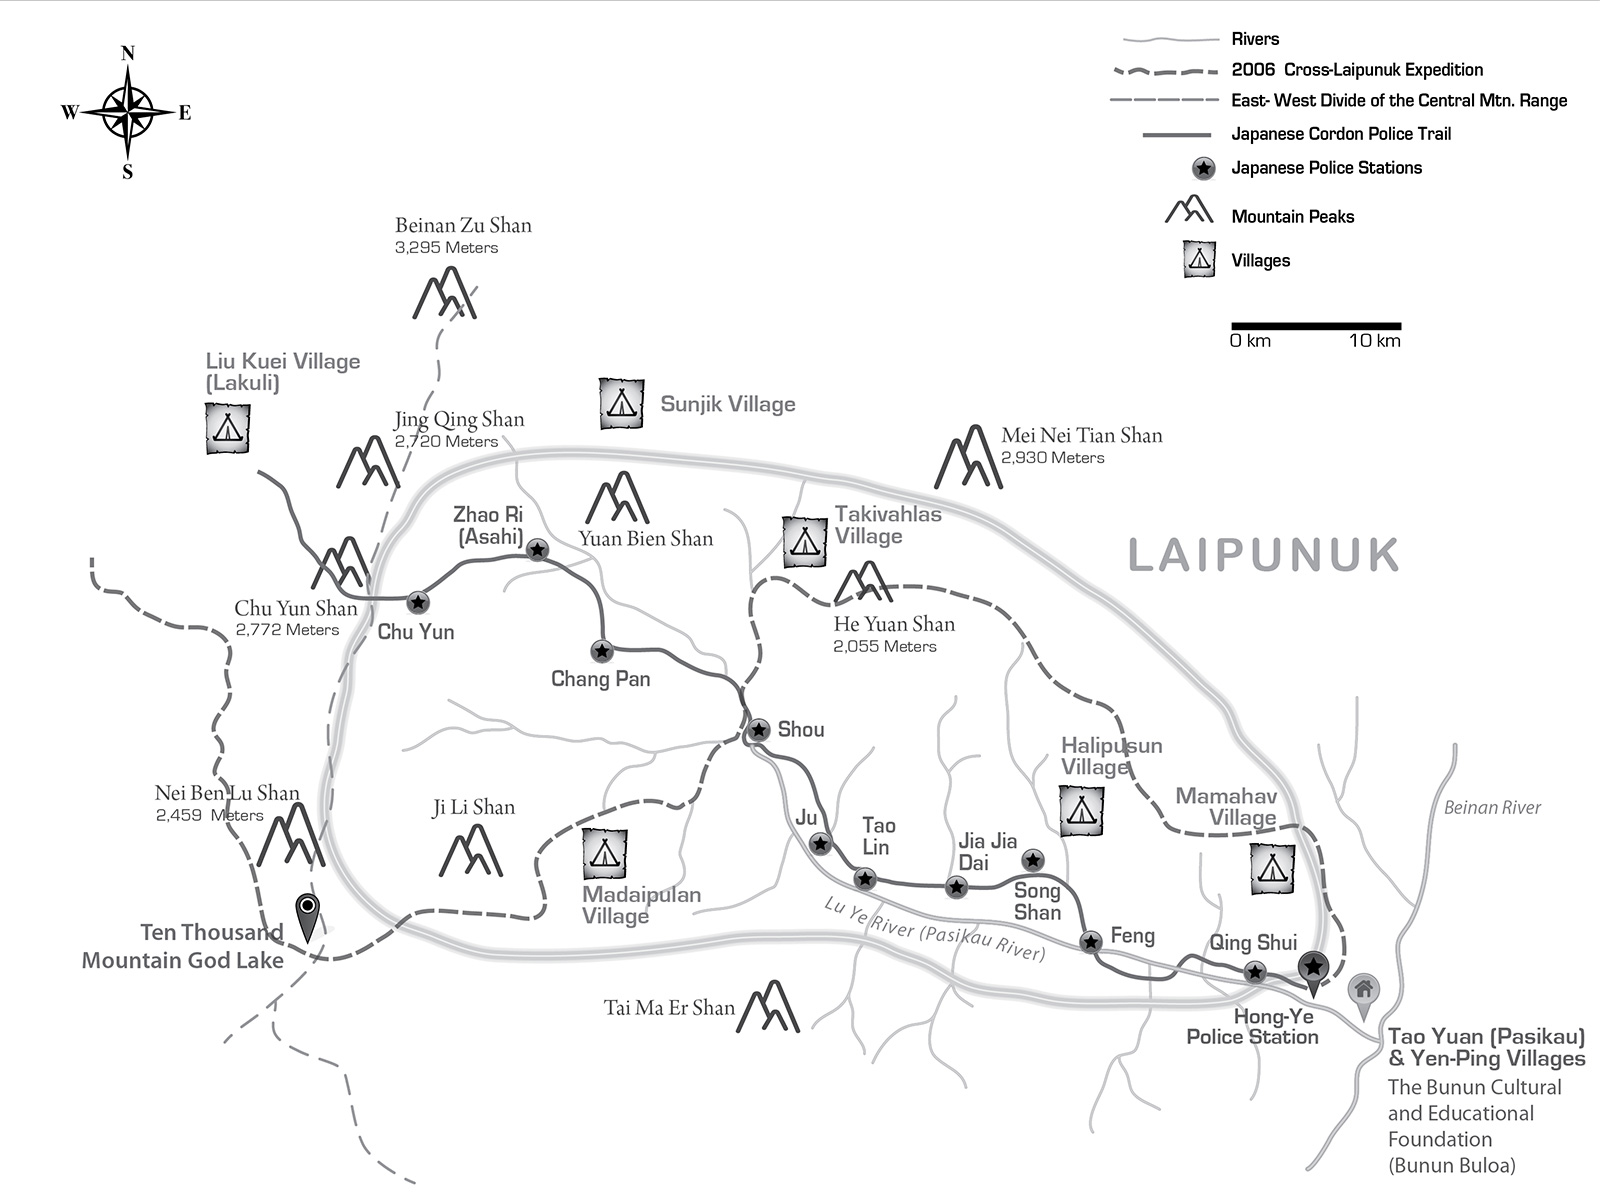 Map © Steven Martin | Laipunuk 內本鹿 Nei Ben Lu Map | Japanese trail and police stations | Taiwan Studies